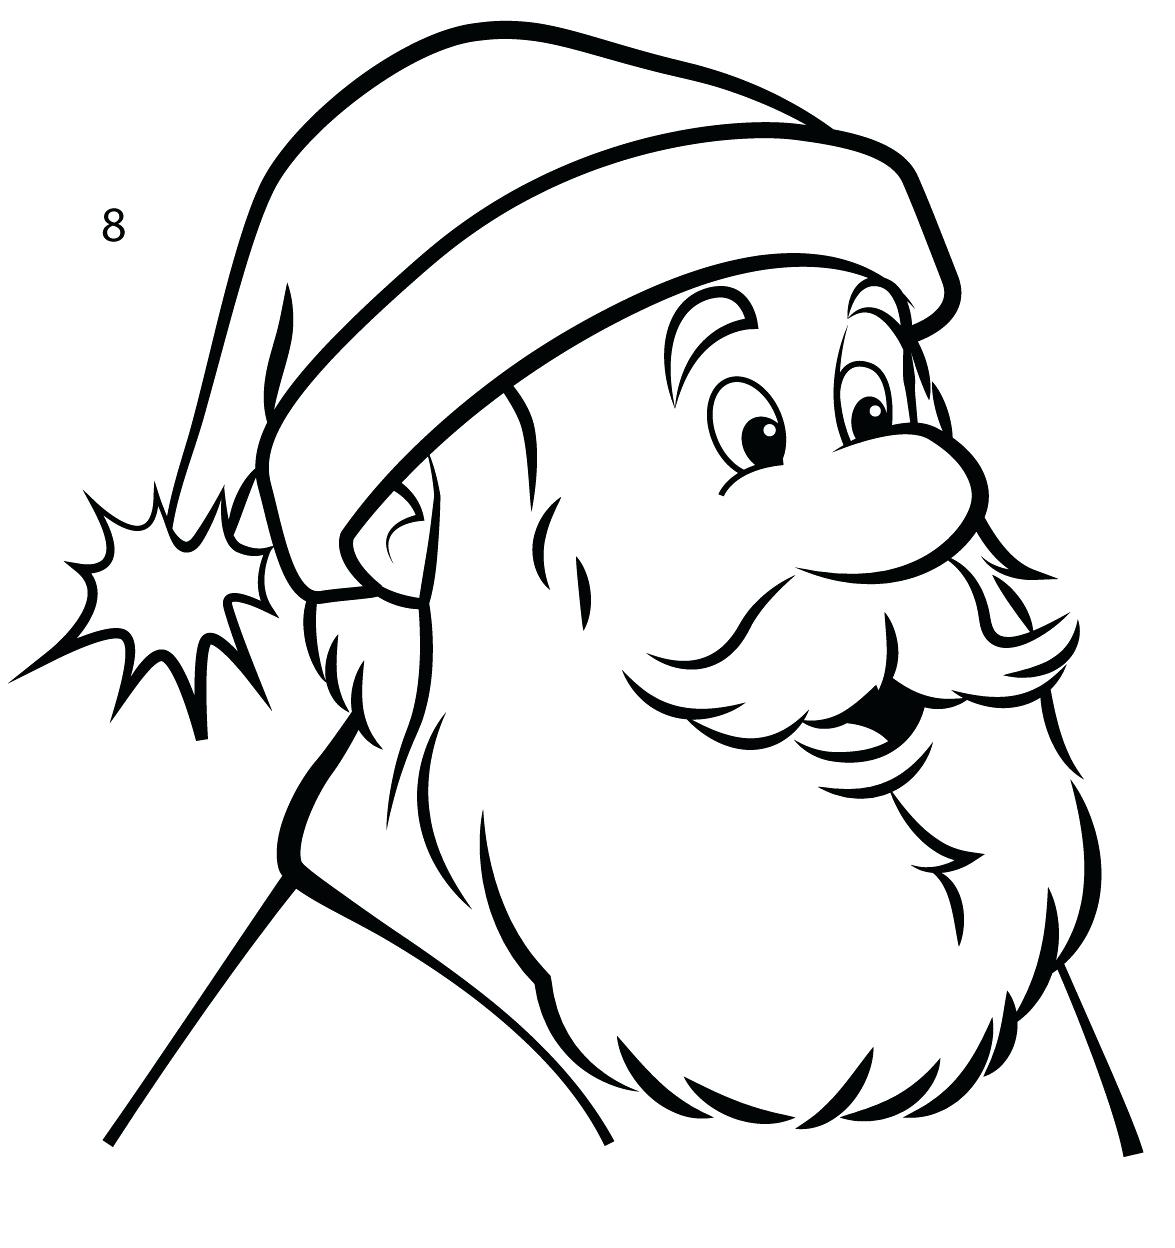 Santa Claus Face Drawing at GetDrawings.com | Free for personal use ...